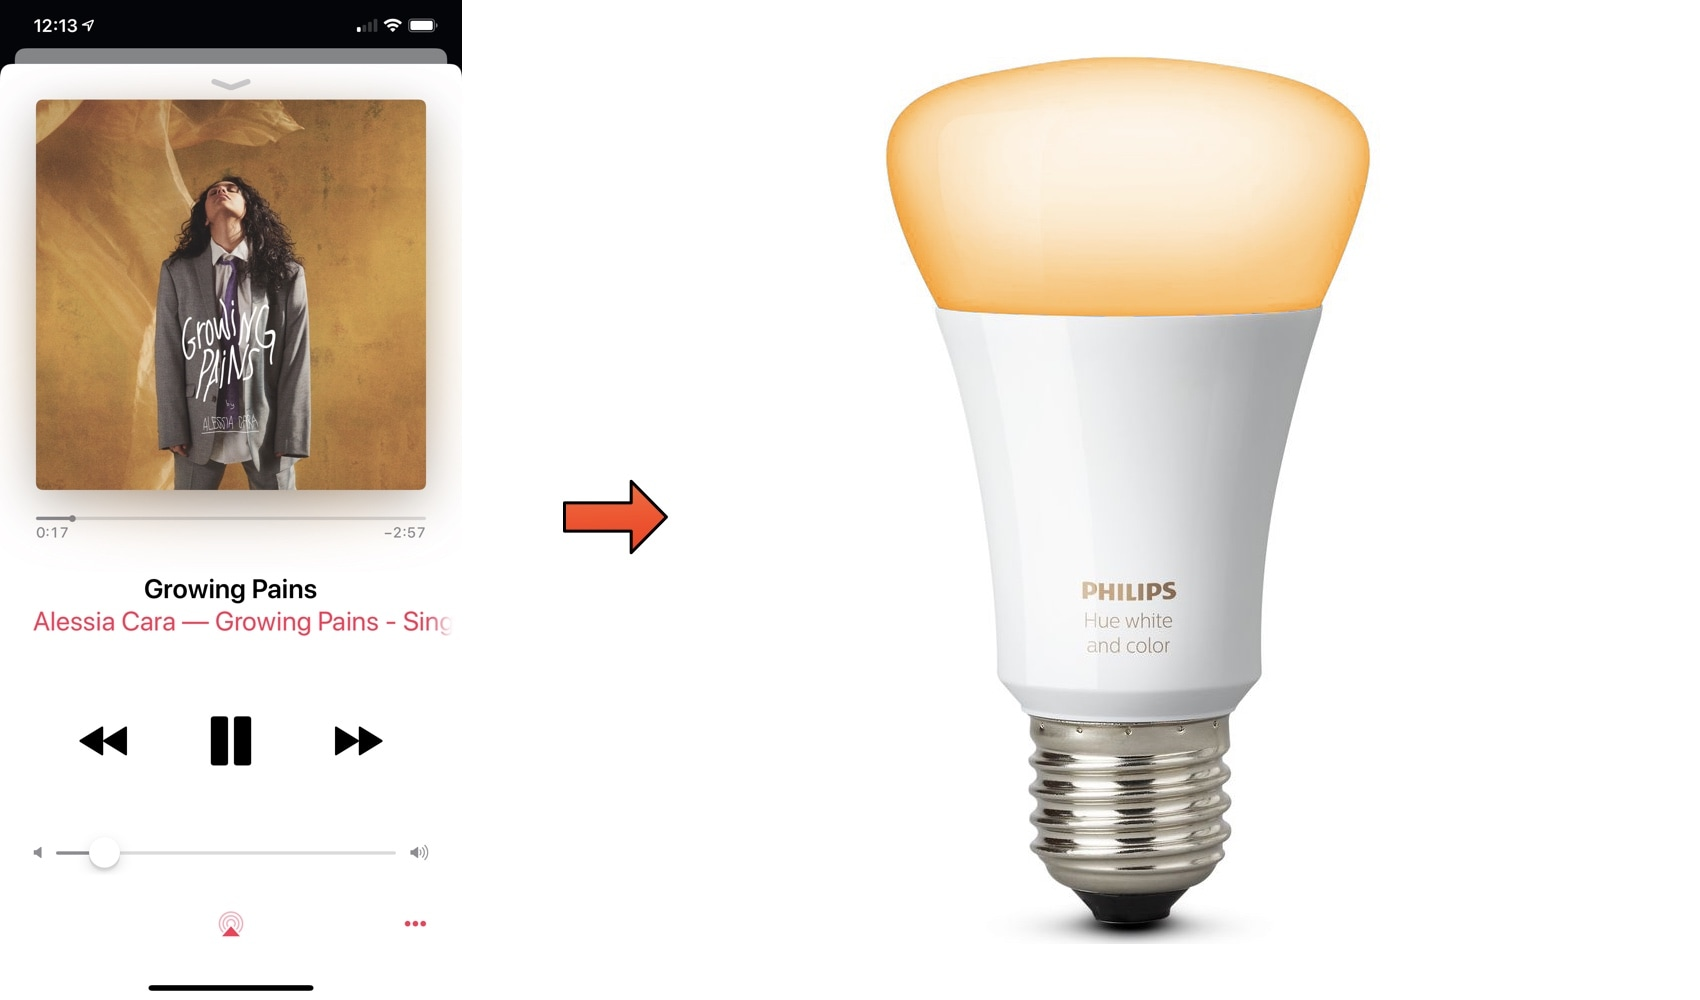 HUE2 colorizes your Philips Hue lights based on colors from the Now